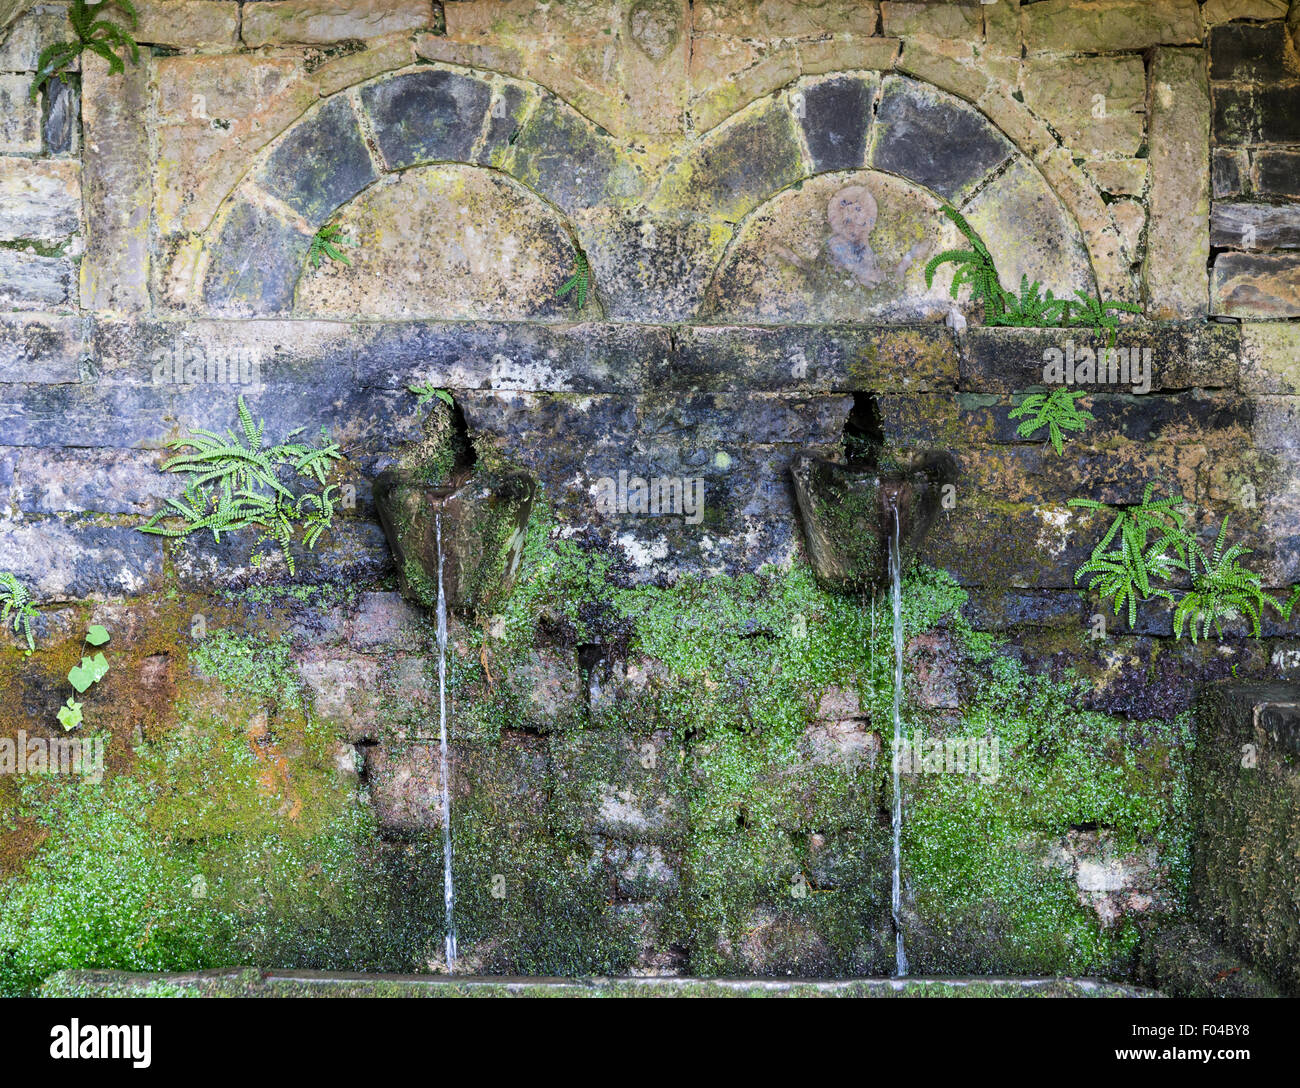 Spring water runs from a fountain in Vitsa, one of the stone villages of Zagoria, Greece - Stock Image